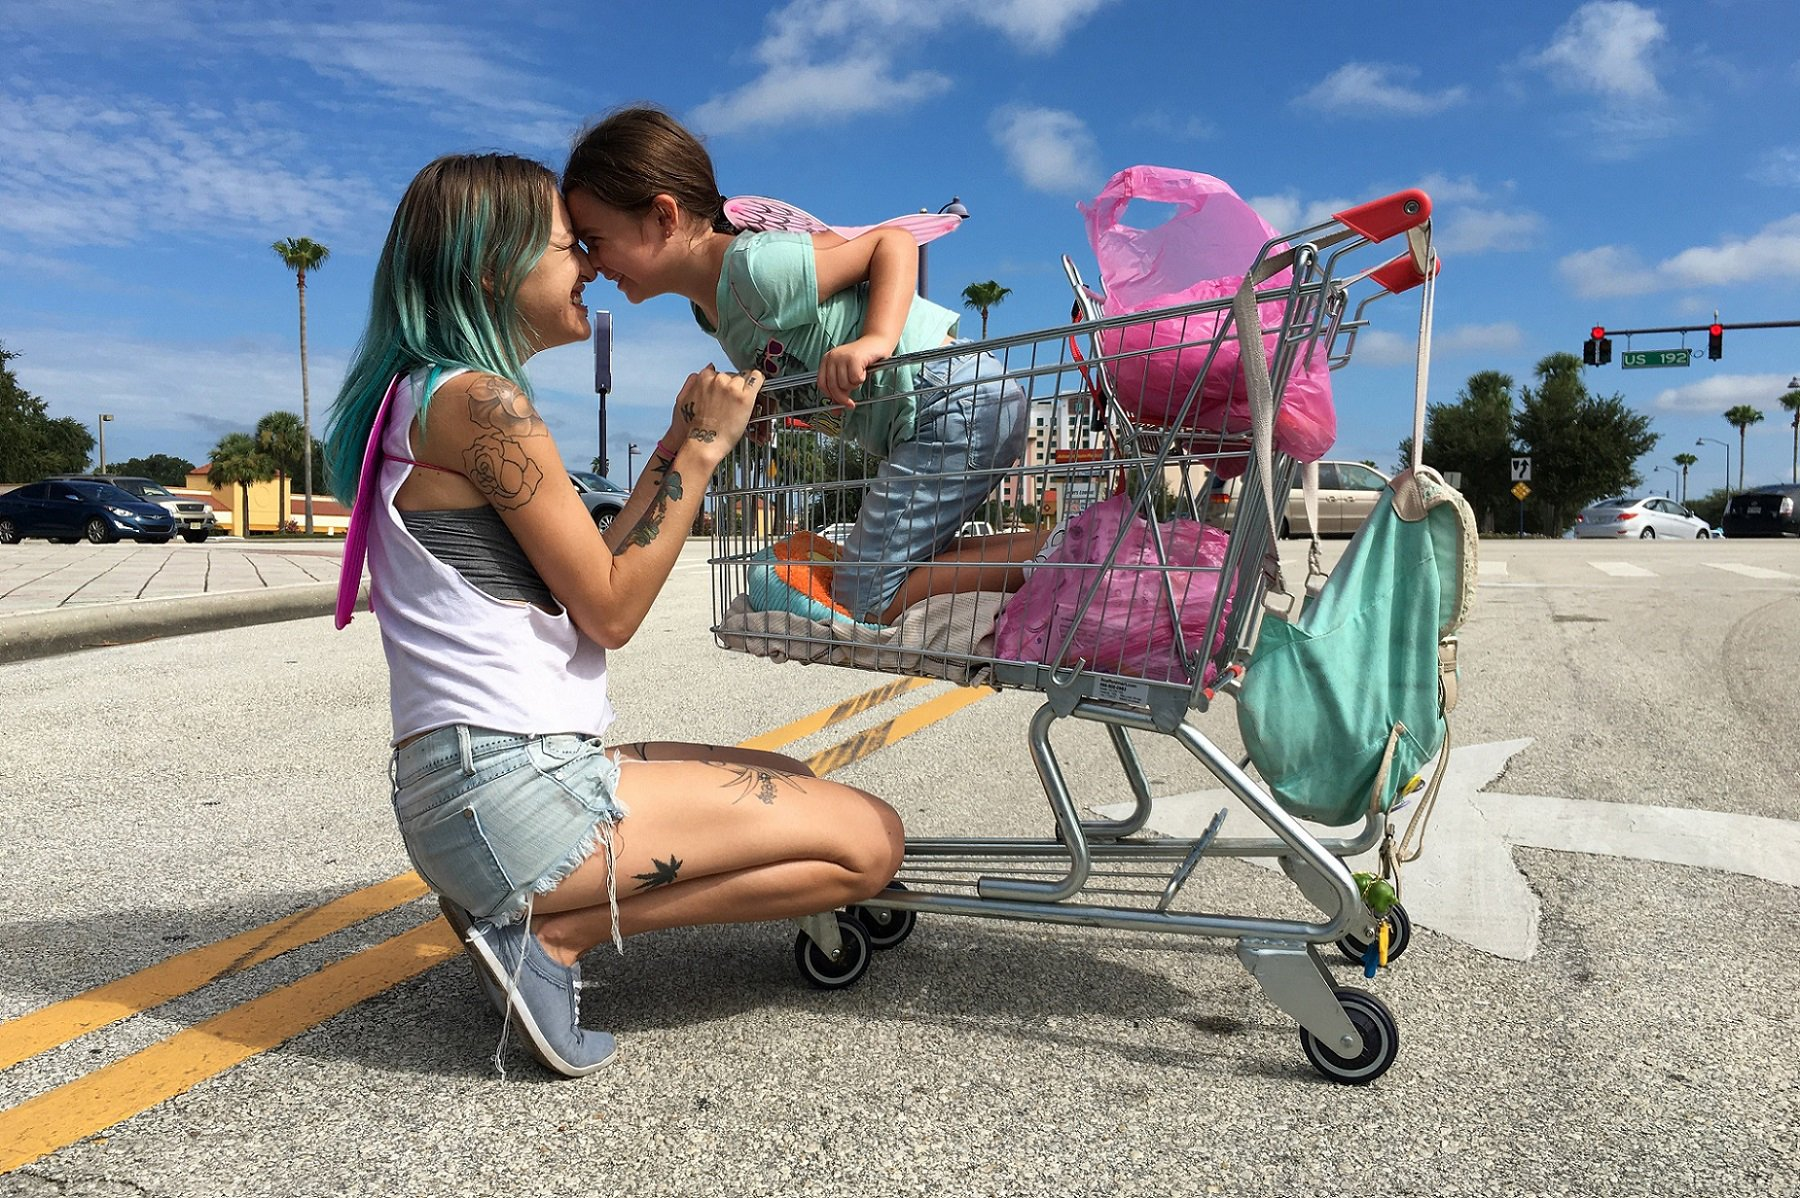 A24 Spotlight: The Florida Project